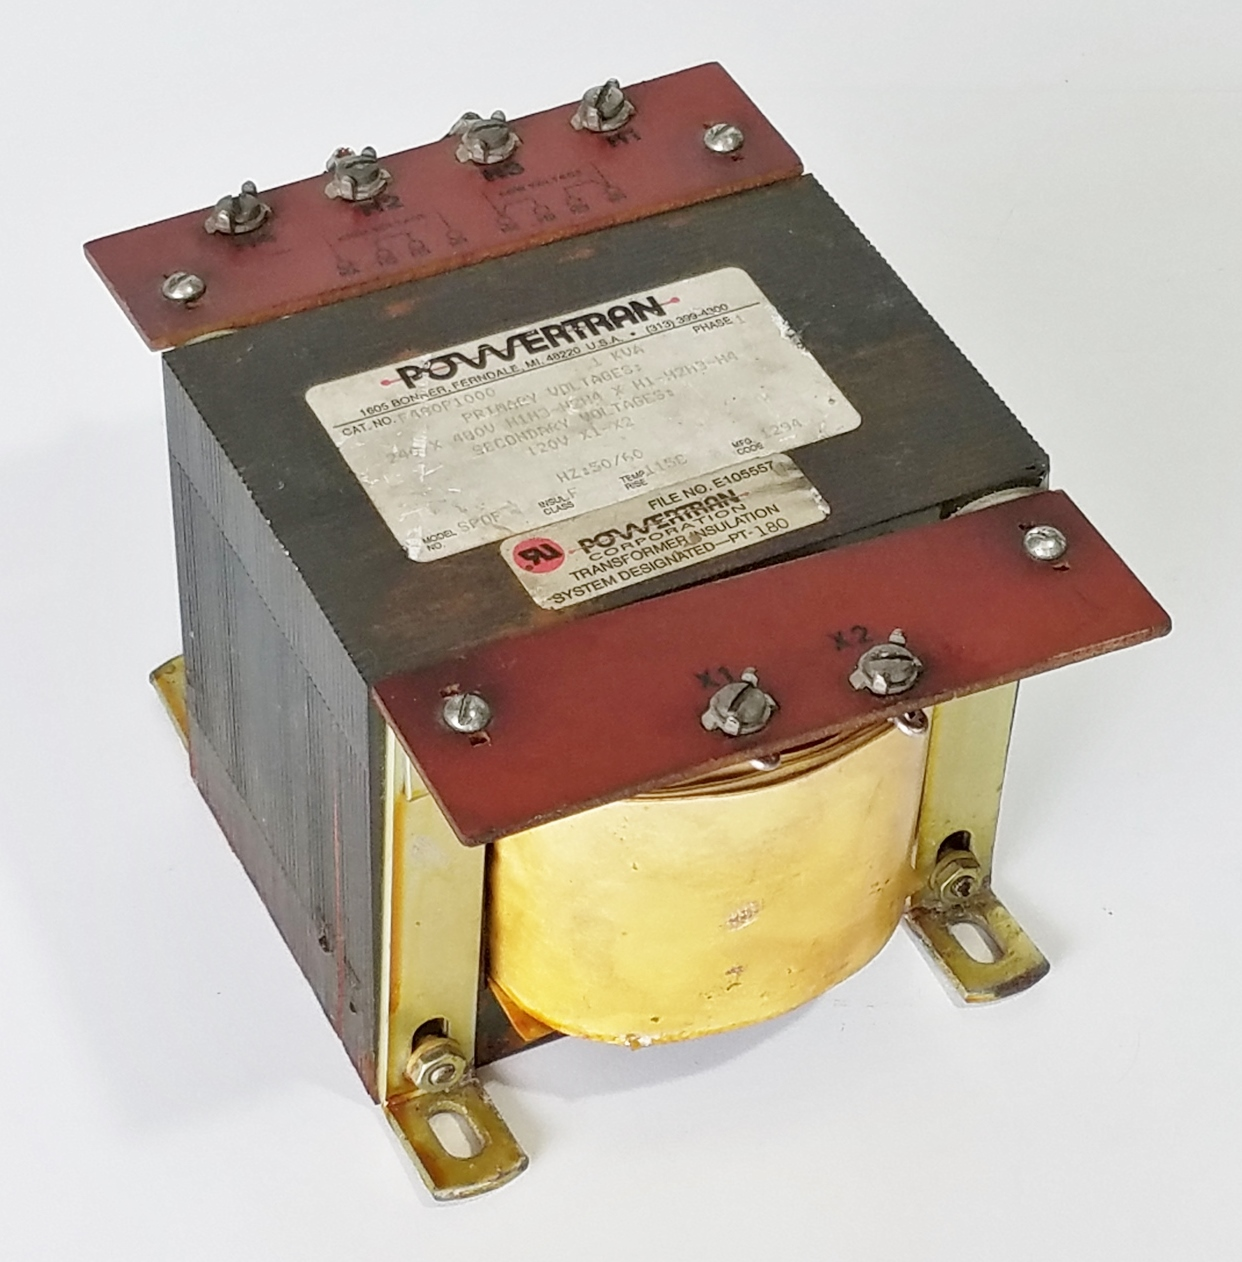 Lot 14 - POWERTRAN STEP DOWN TRANSFORMER